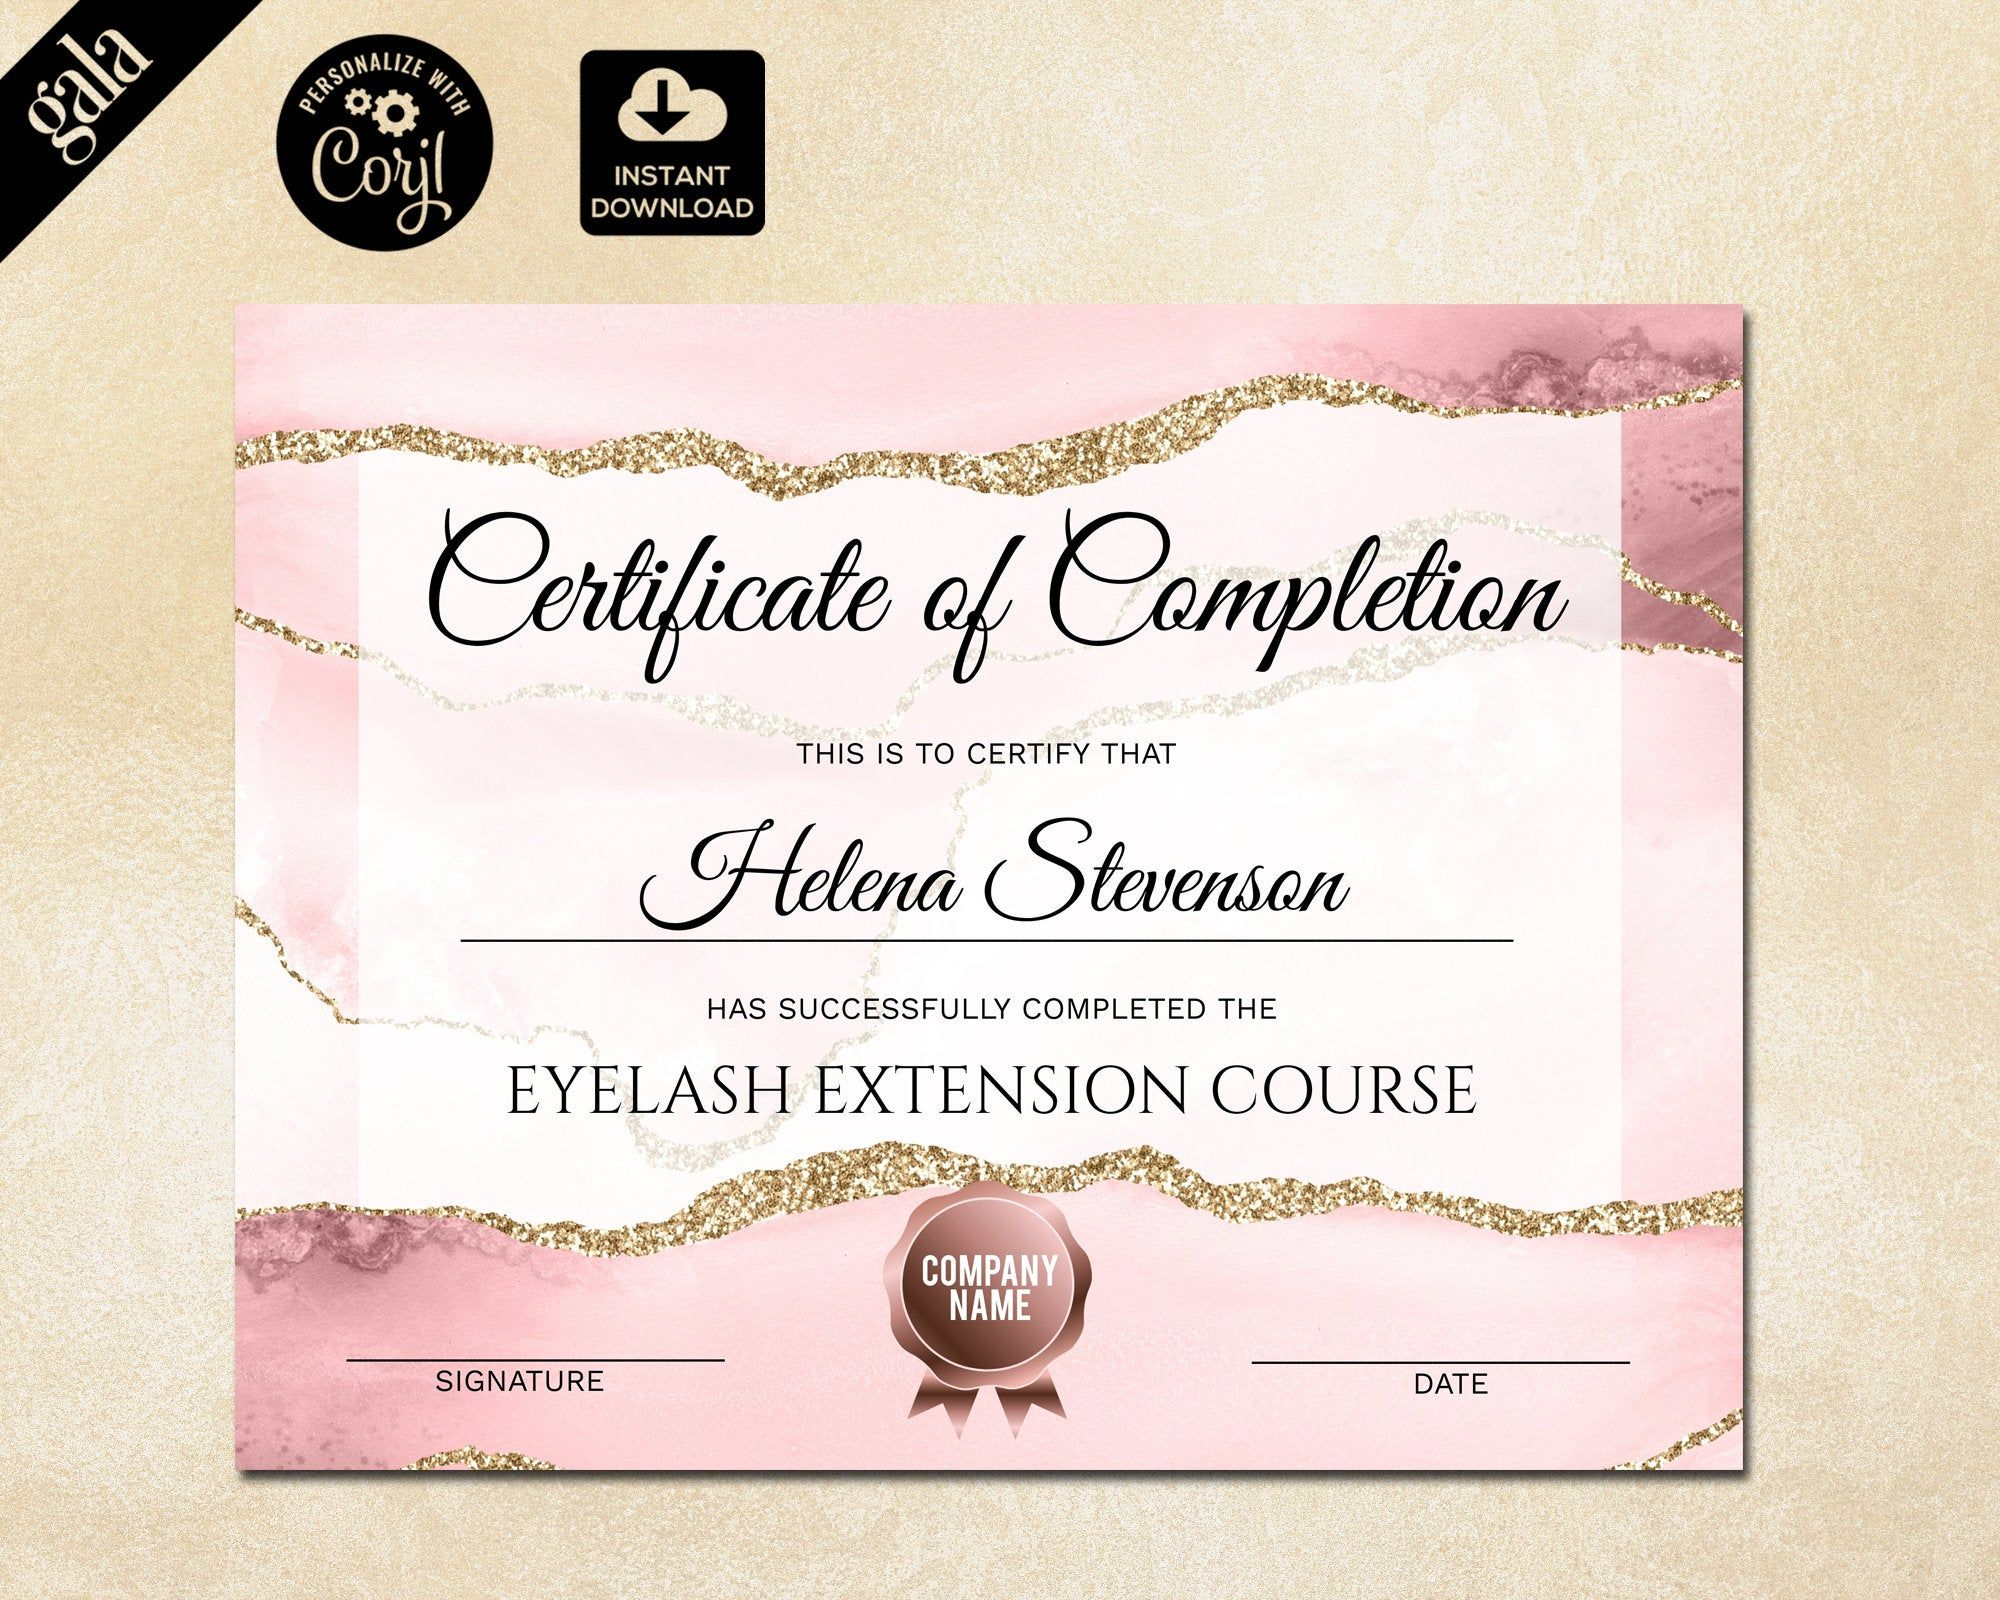 Certificate Of Completion Lashes Certificate Template Blush Etsy In 2021 Certificate Design Template Certificate Templates Certificate Of Completion